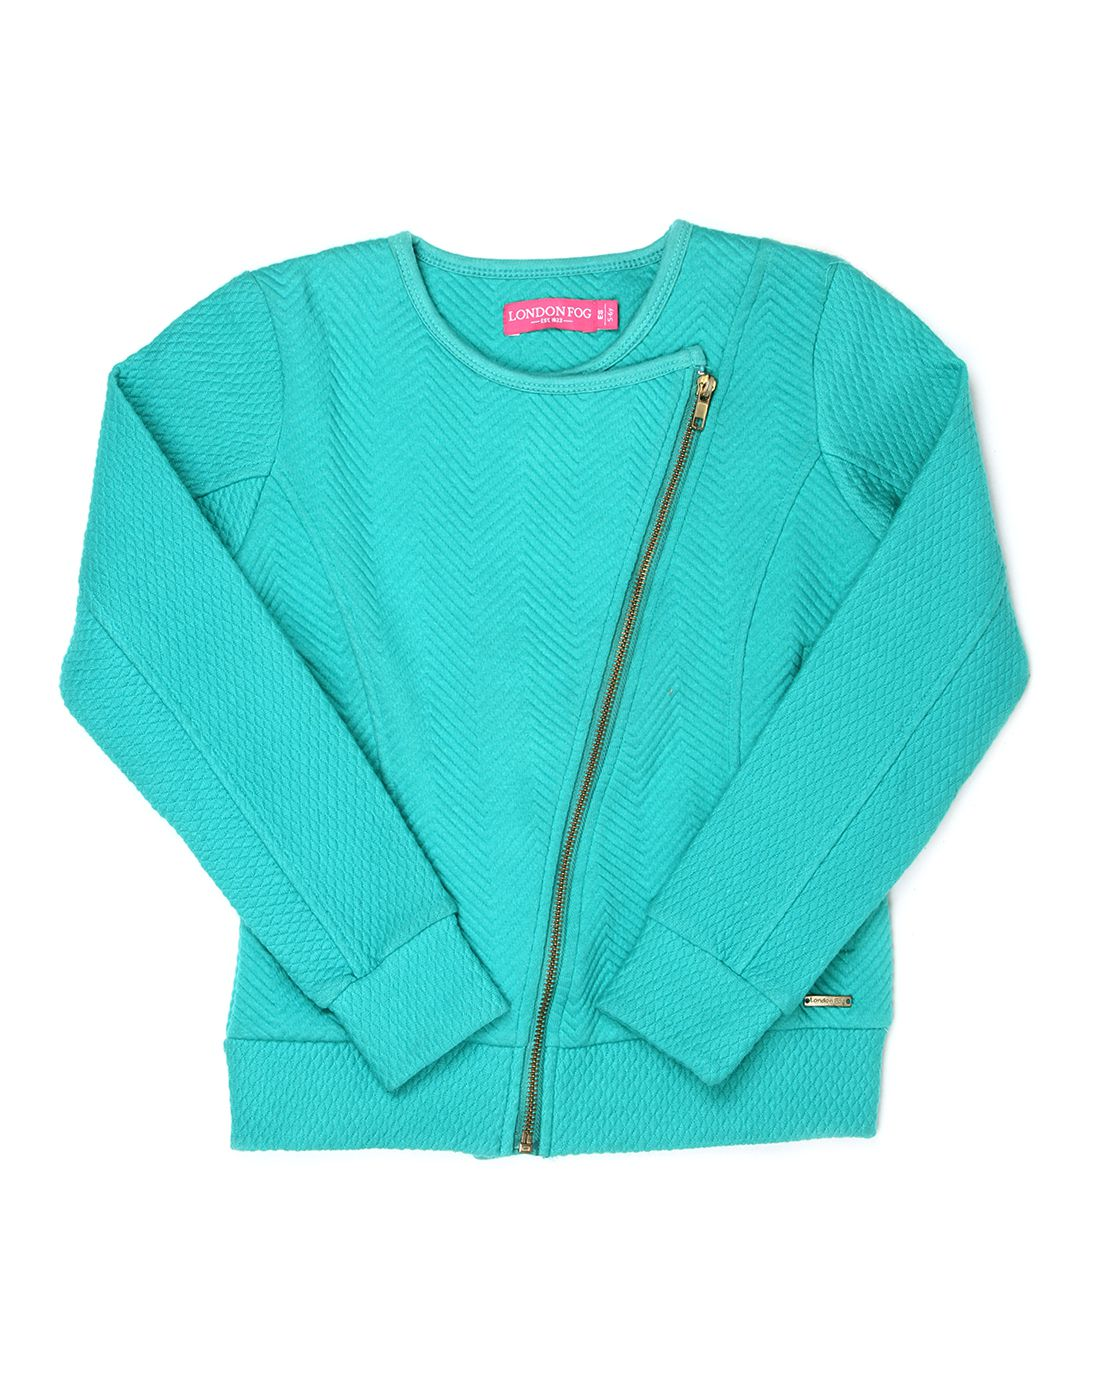 London Fog Girls Green Full Sleeve Jacket